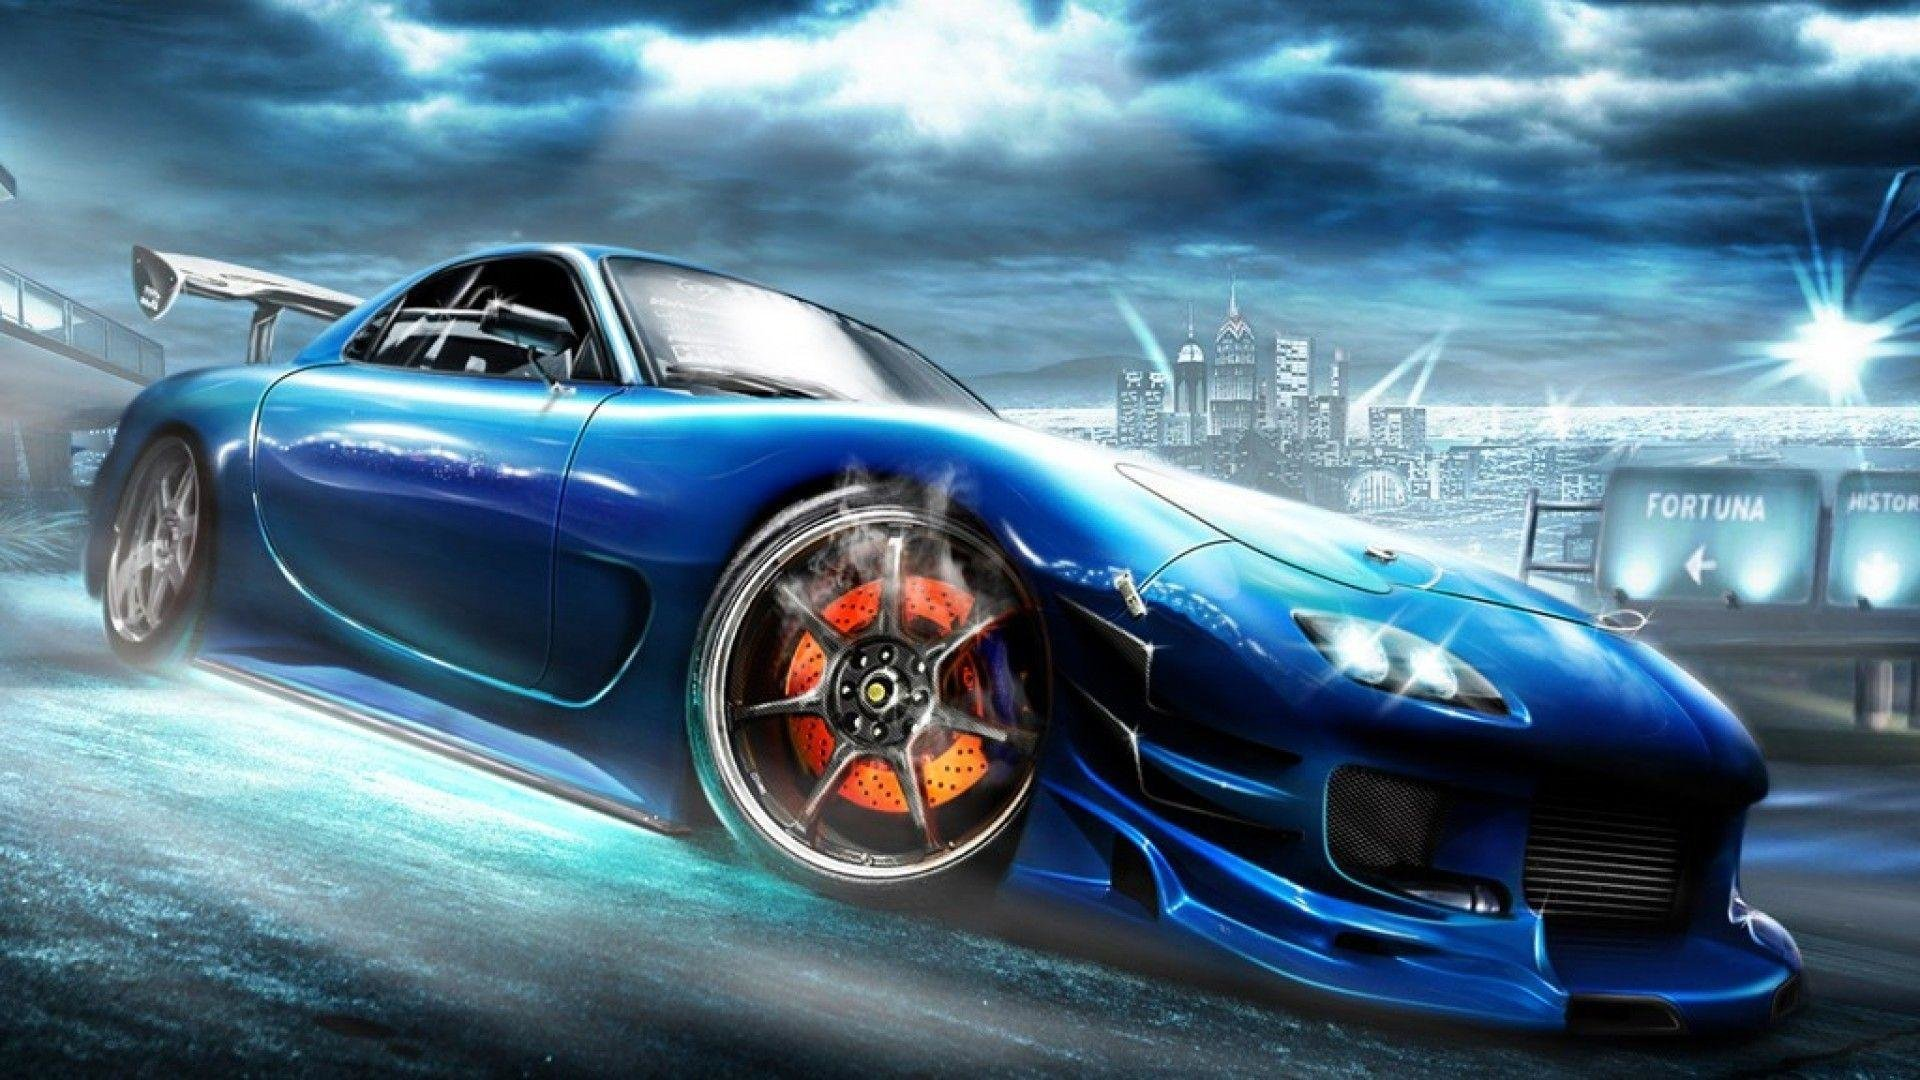 Latest Mazda Rx 7 Wallpapers Wallpaper Cave Free Download